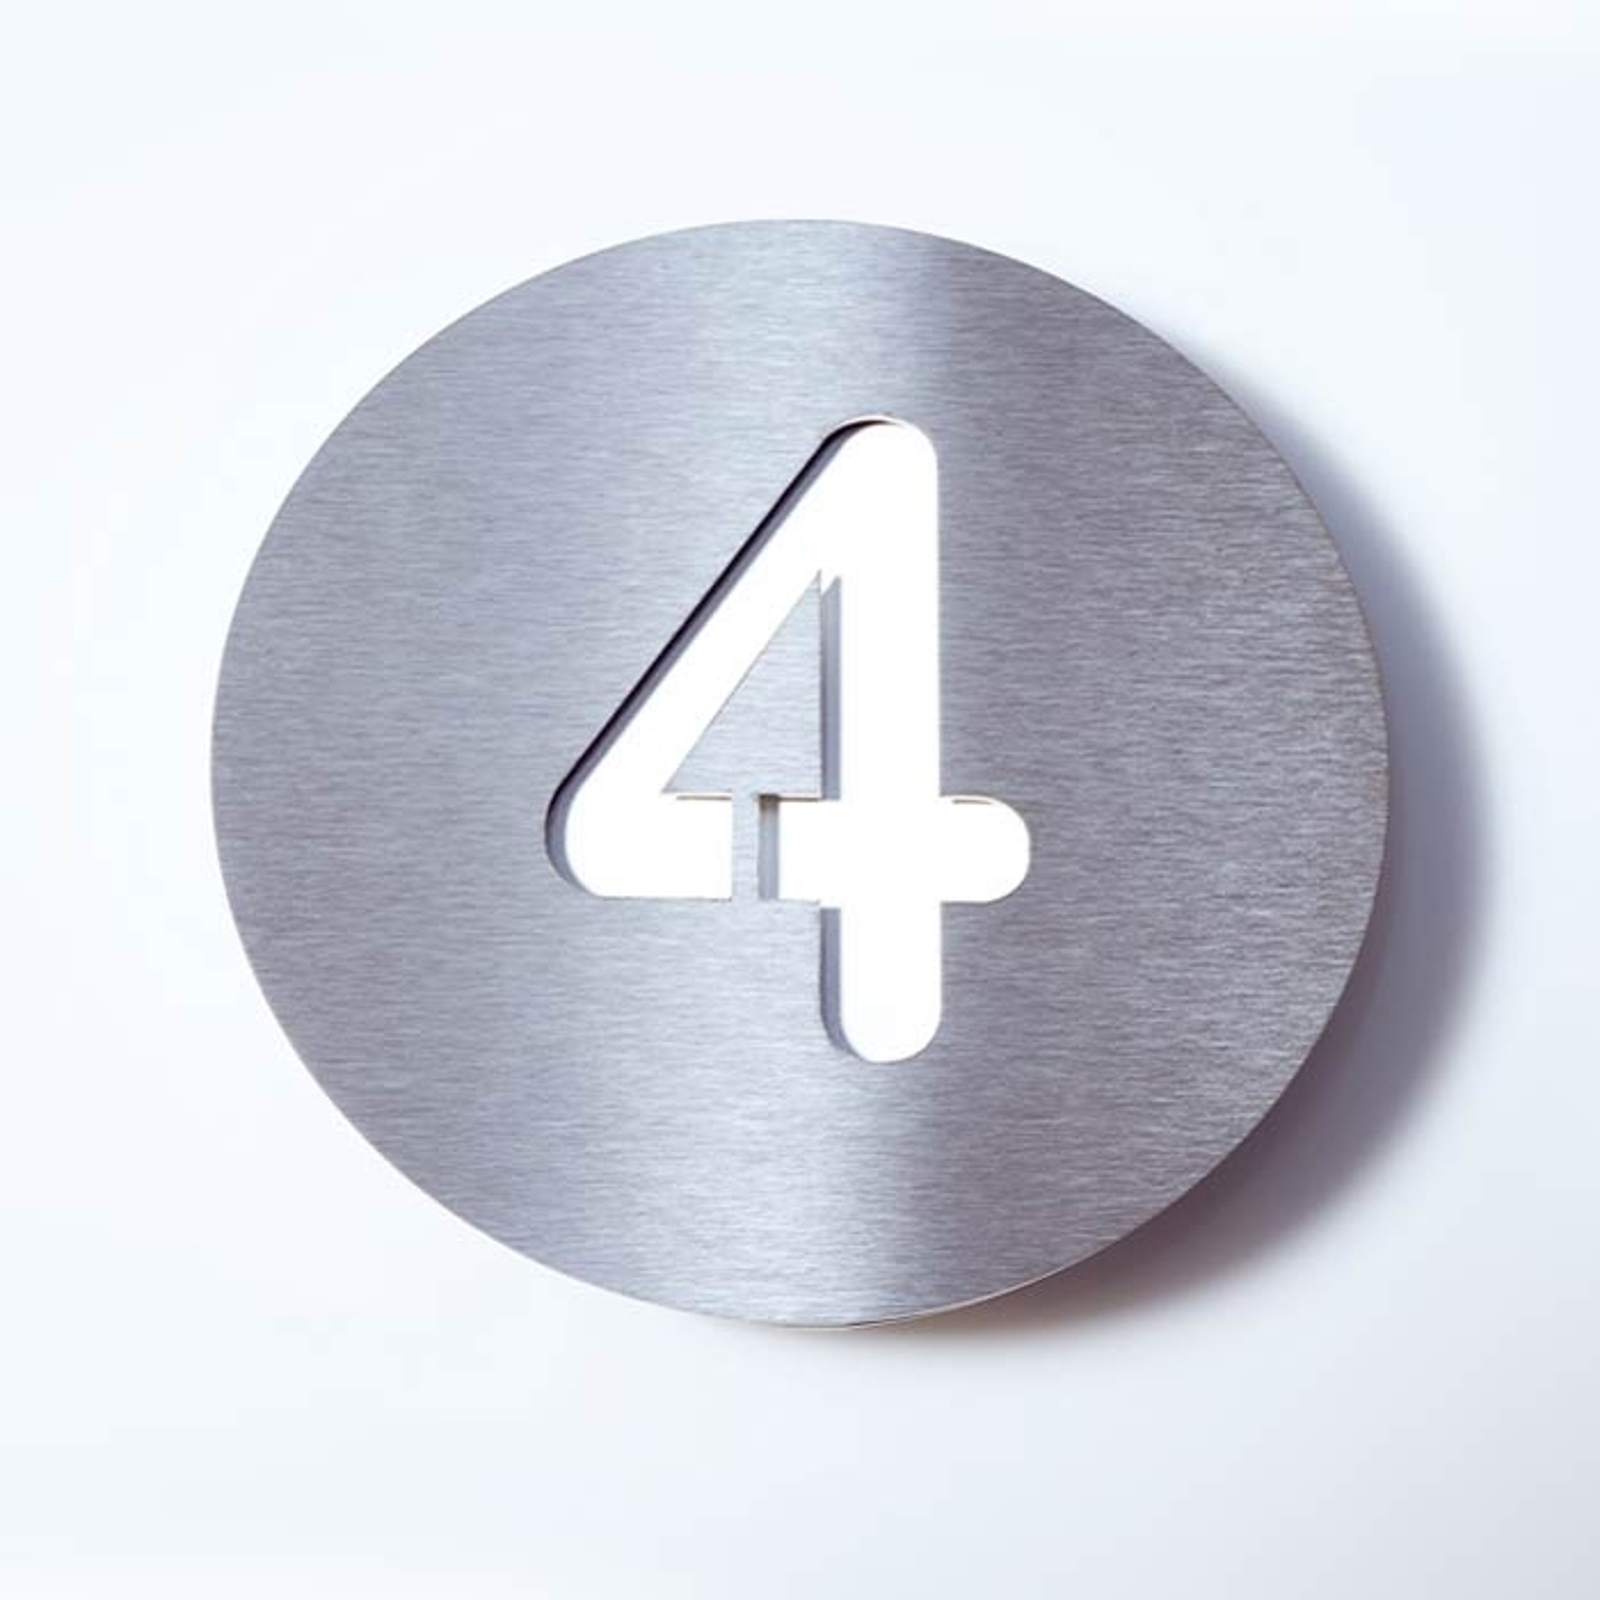 Stainless steel house number Round_1057082_1